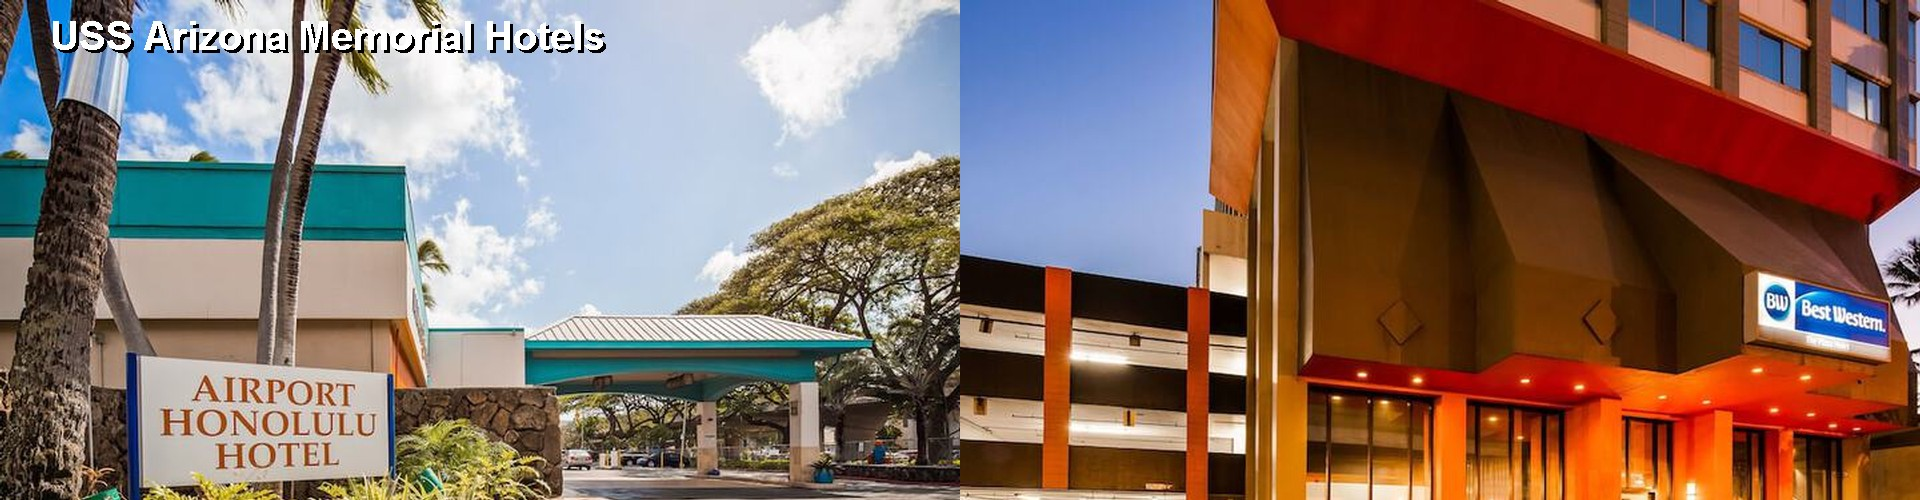 5 Best Hotels near USS Arizona Memorial